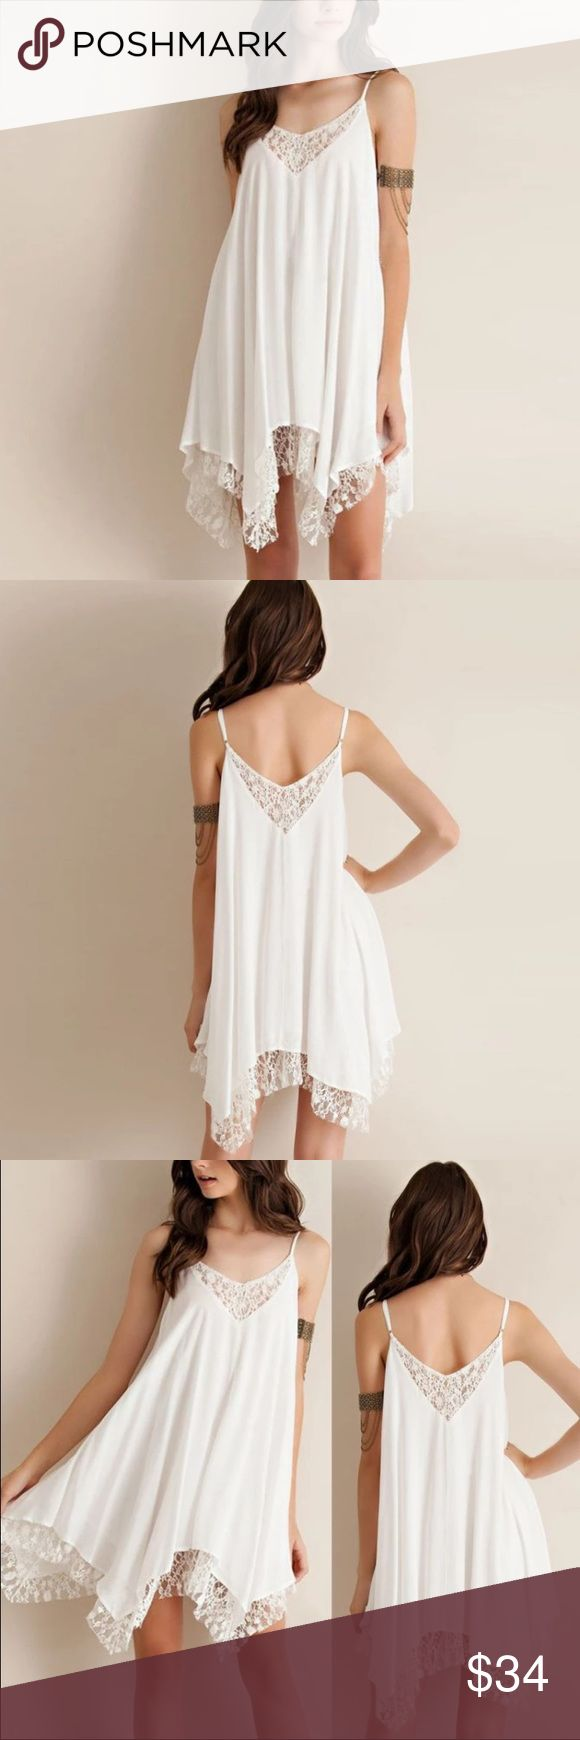 Summer Lace Chiffon Dress NWT in original packaging. This lightweight dress is a gorgeous addition to any summer wardrobe. Dress up for a day on the town, or wear as a beach swim suit cover-up! It's versatile and totally chíc! Dresses Mini